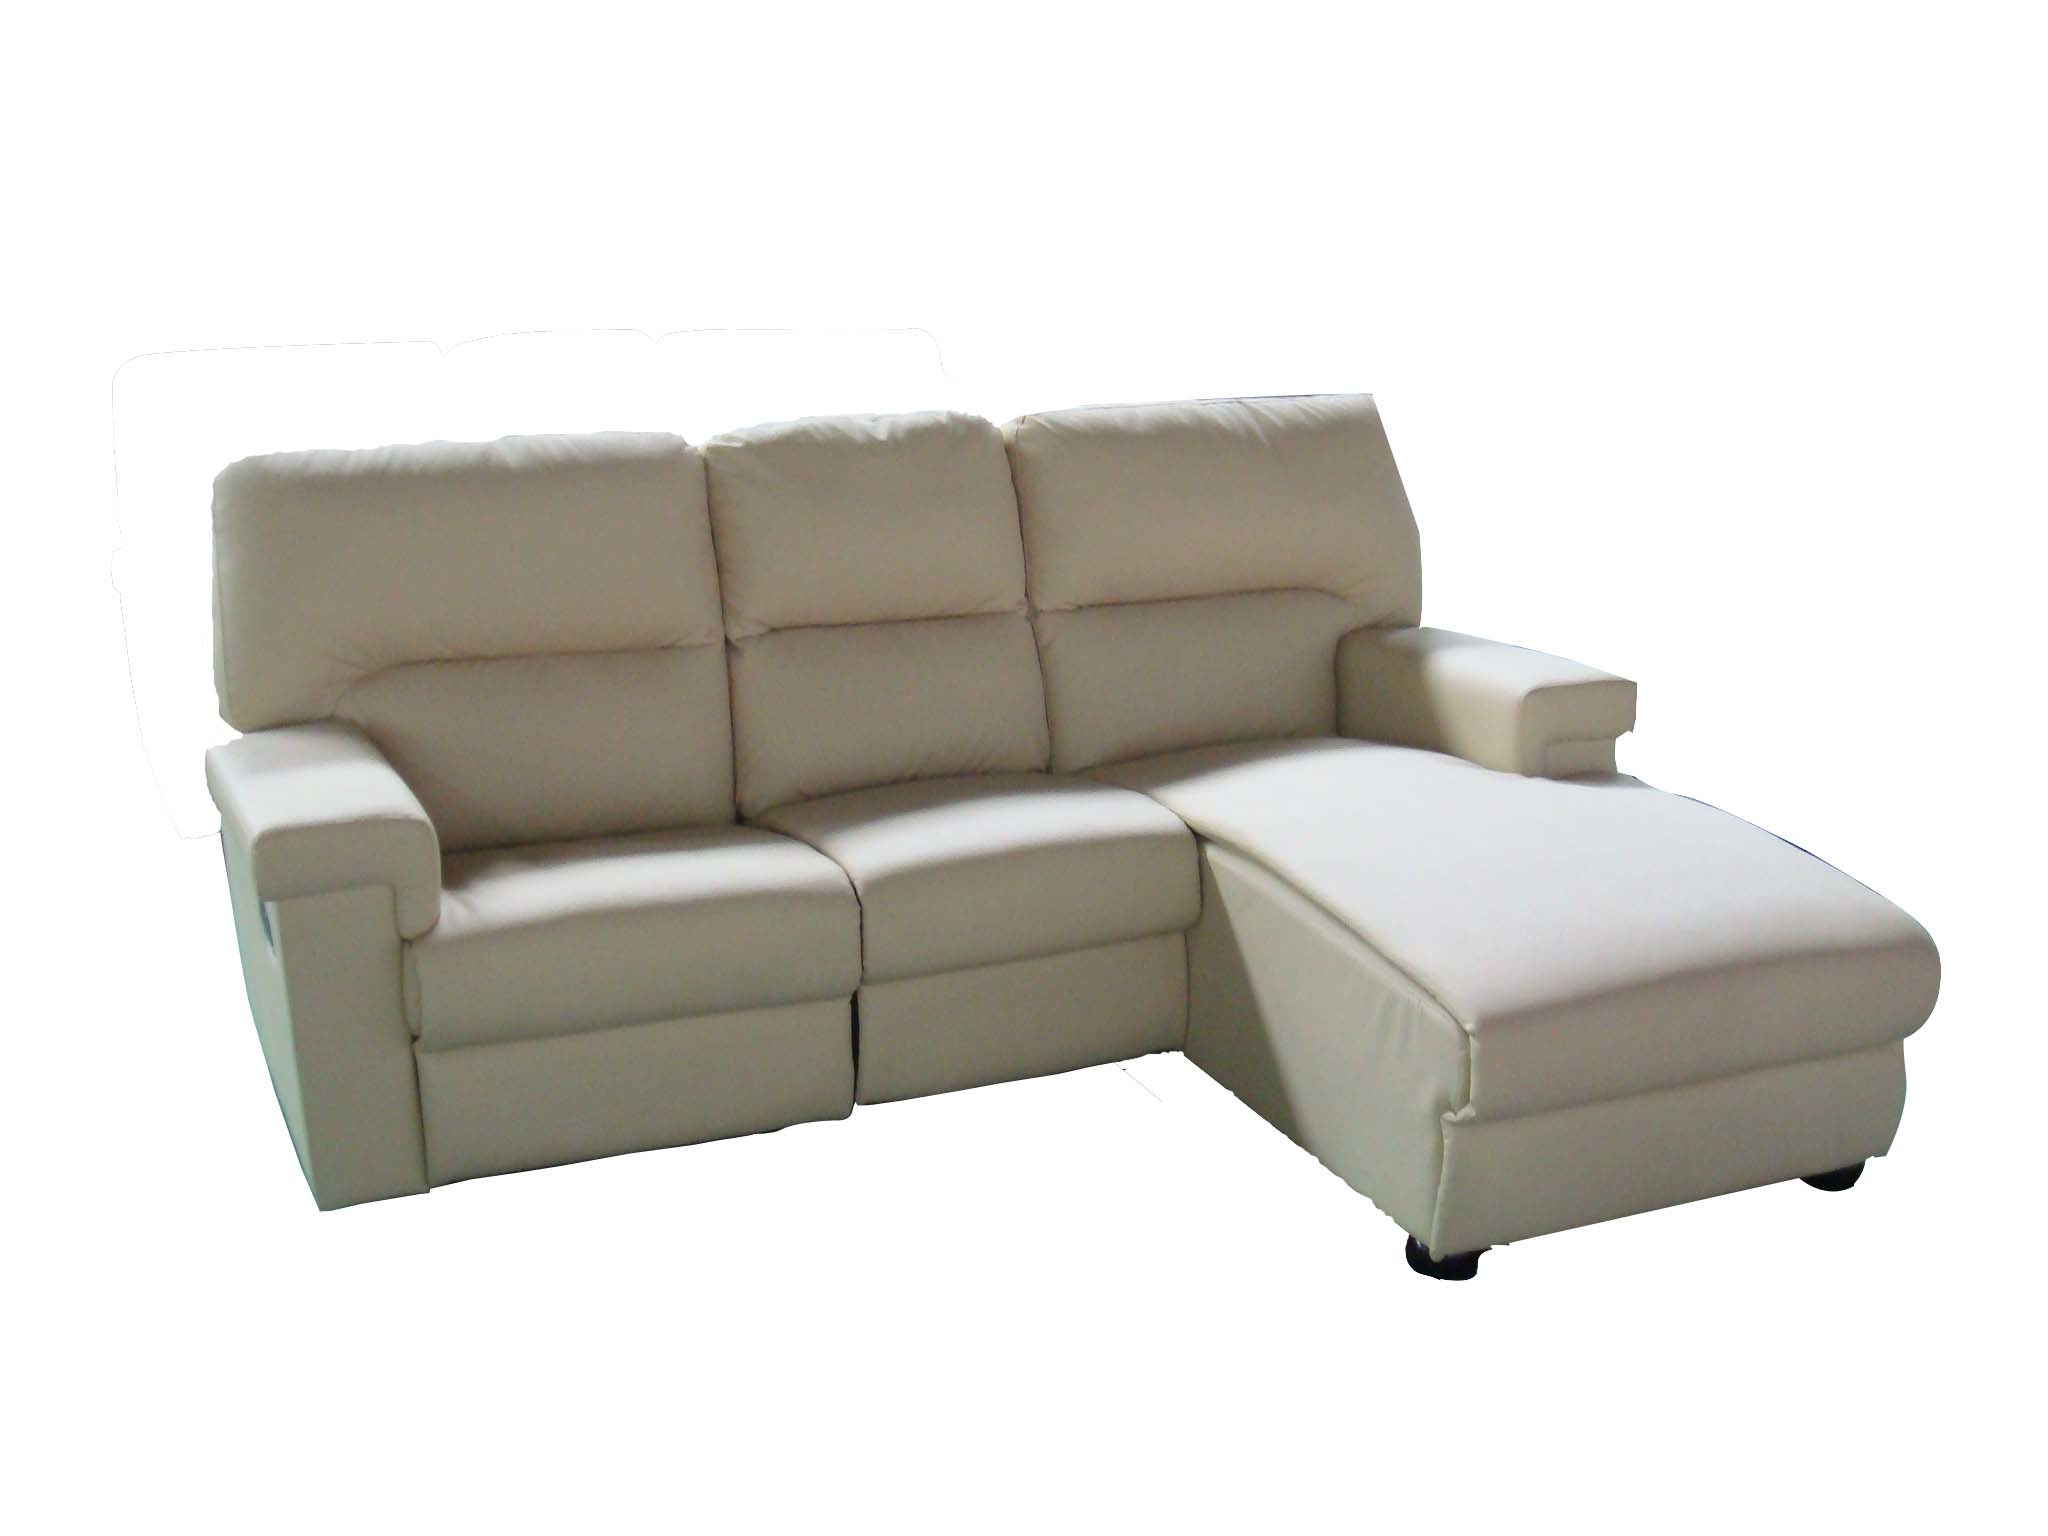 Leather modern couch happy memorial day 2014 for Modern style sofa